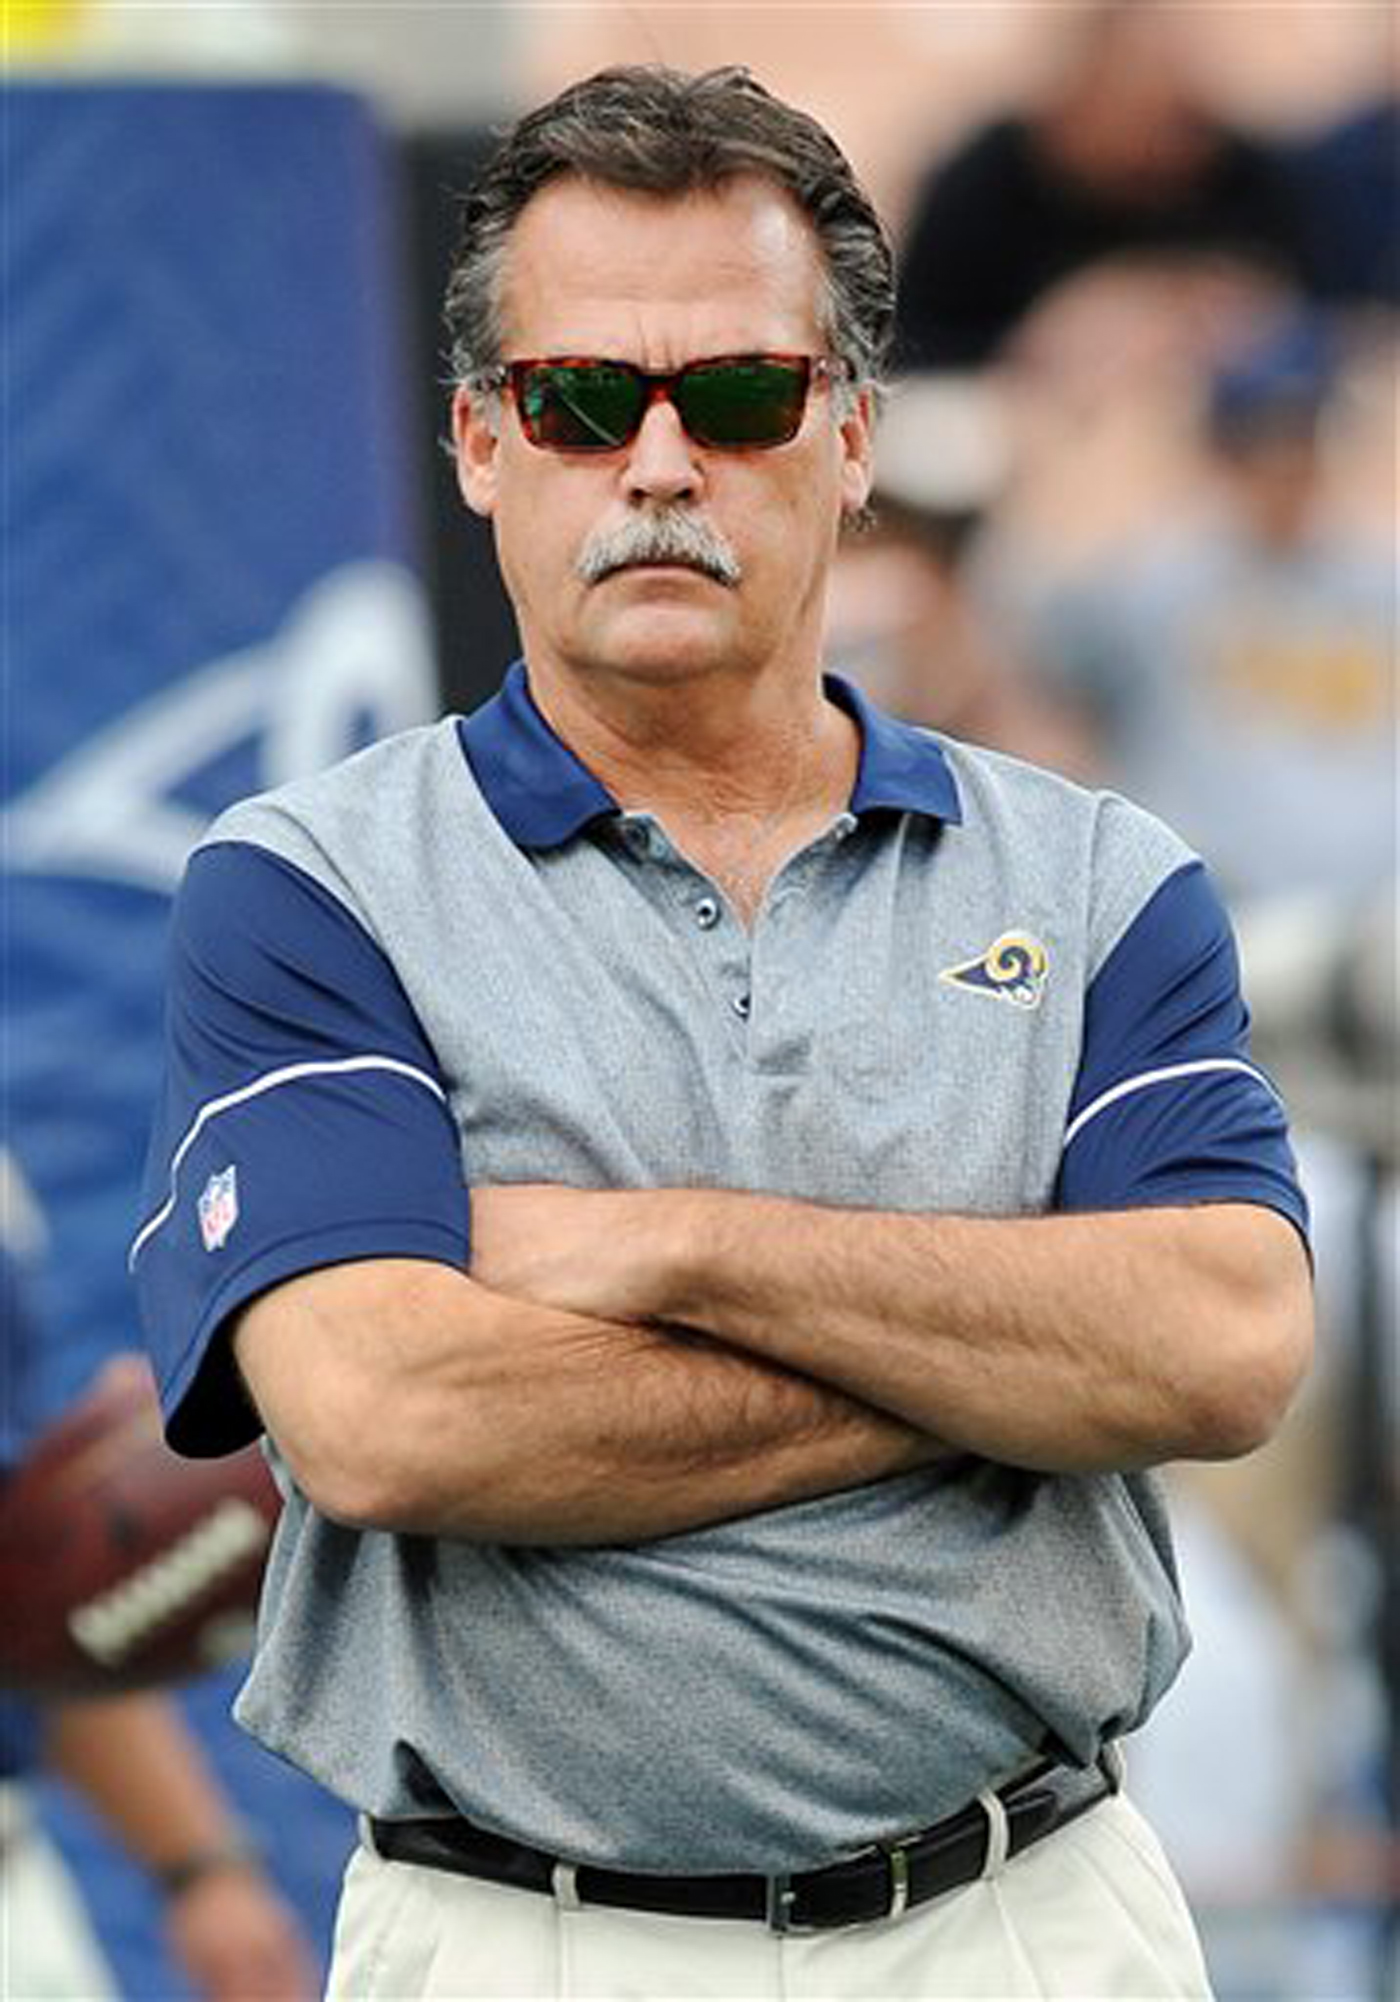 Los Angeles Rams Head Coach Jeff Fisher on the field before a game against the Atlanta Falcons played at Los Angeles Memorial Coliseum in Los Angeles on Sunday, Dec. 11, 2016. AP WIREPHOTO